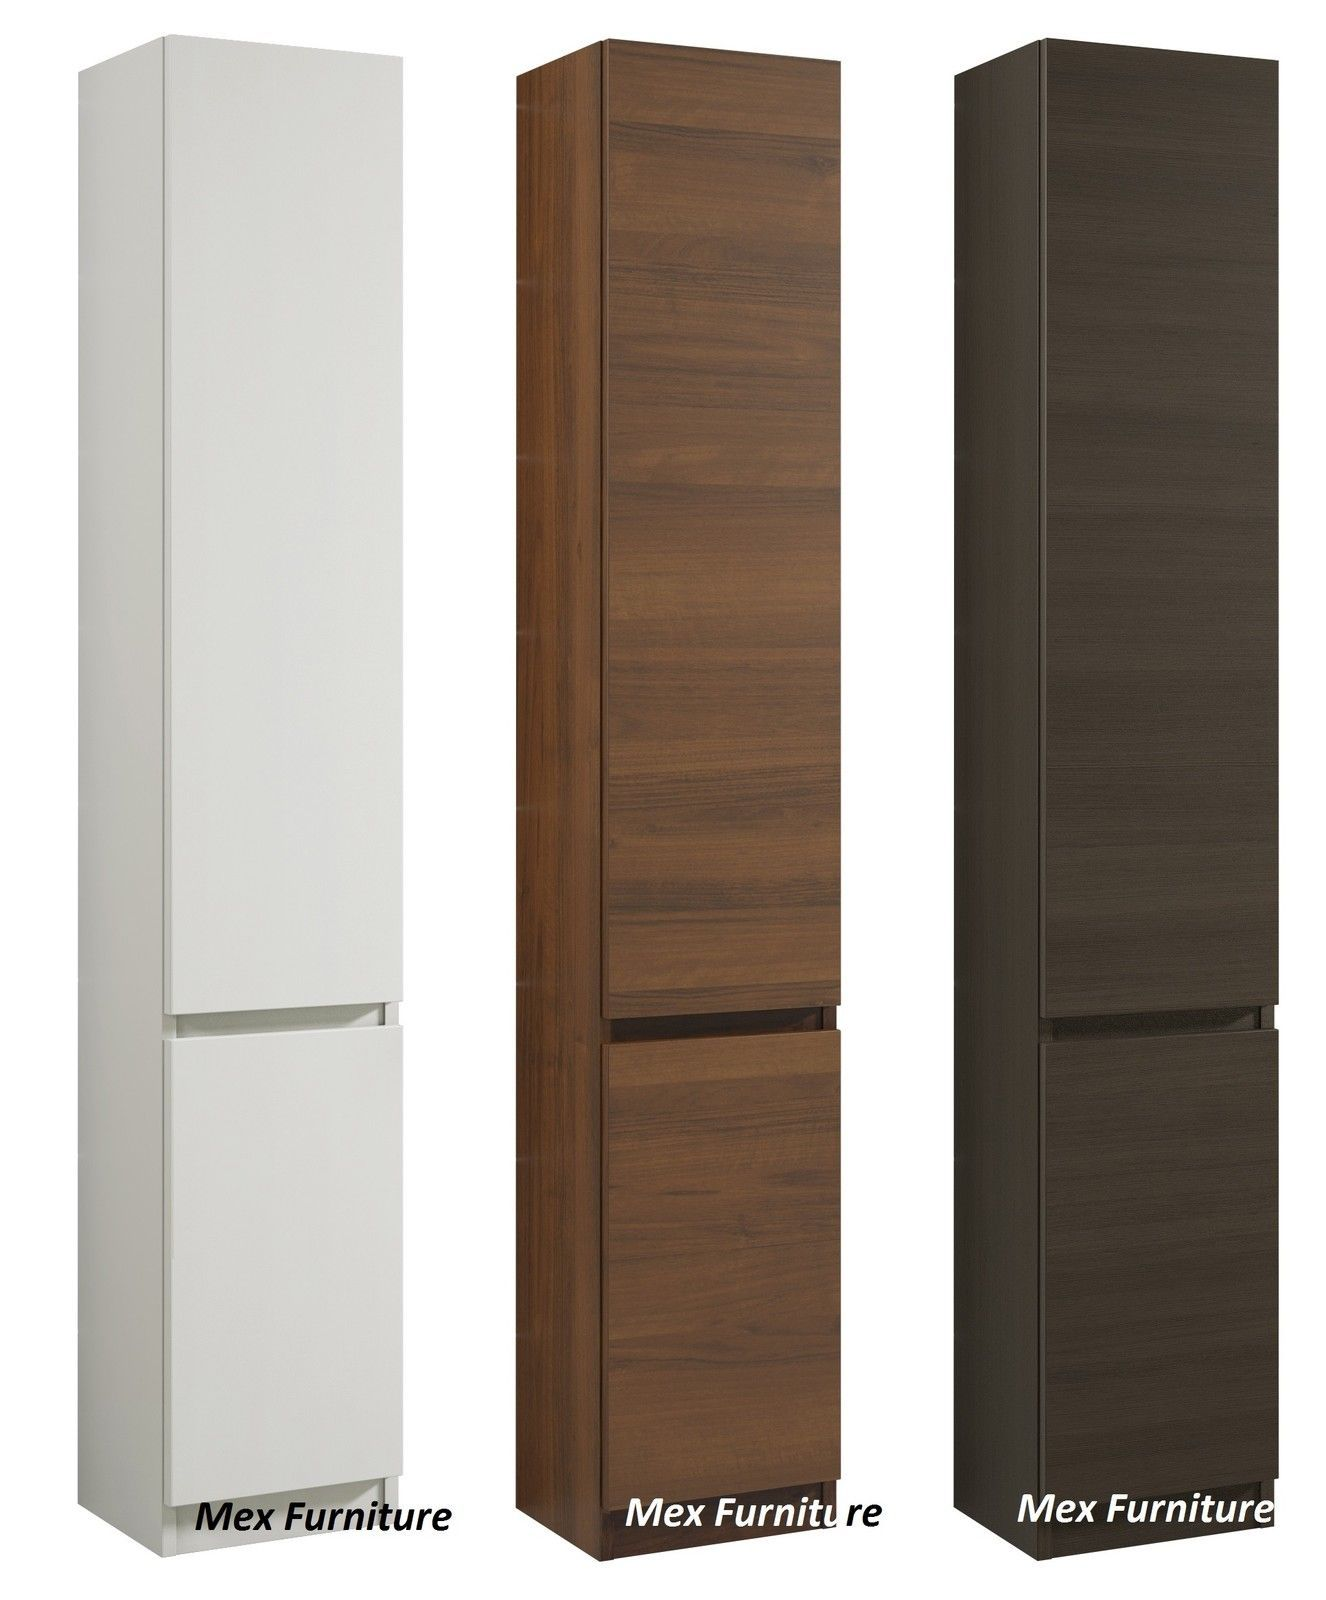 p cabinet with storage doors spacesaver hei zenith wood glass bath spin espresso products wid qlt prod bathroom